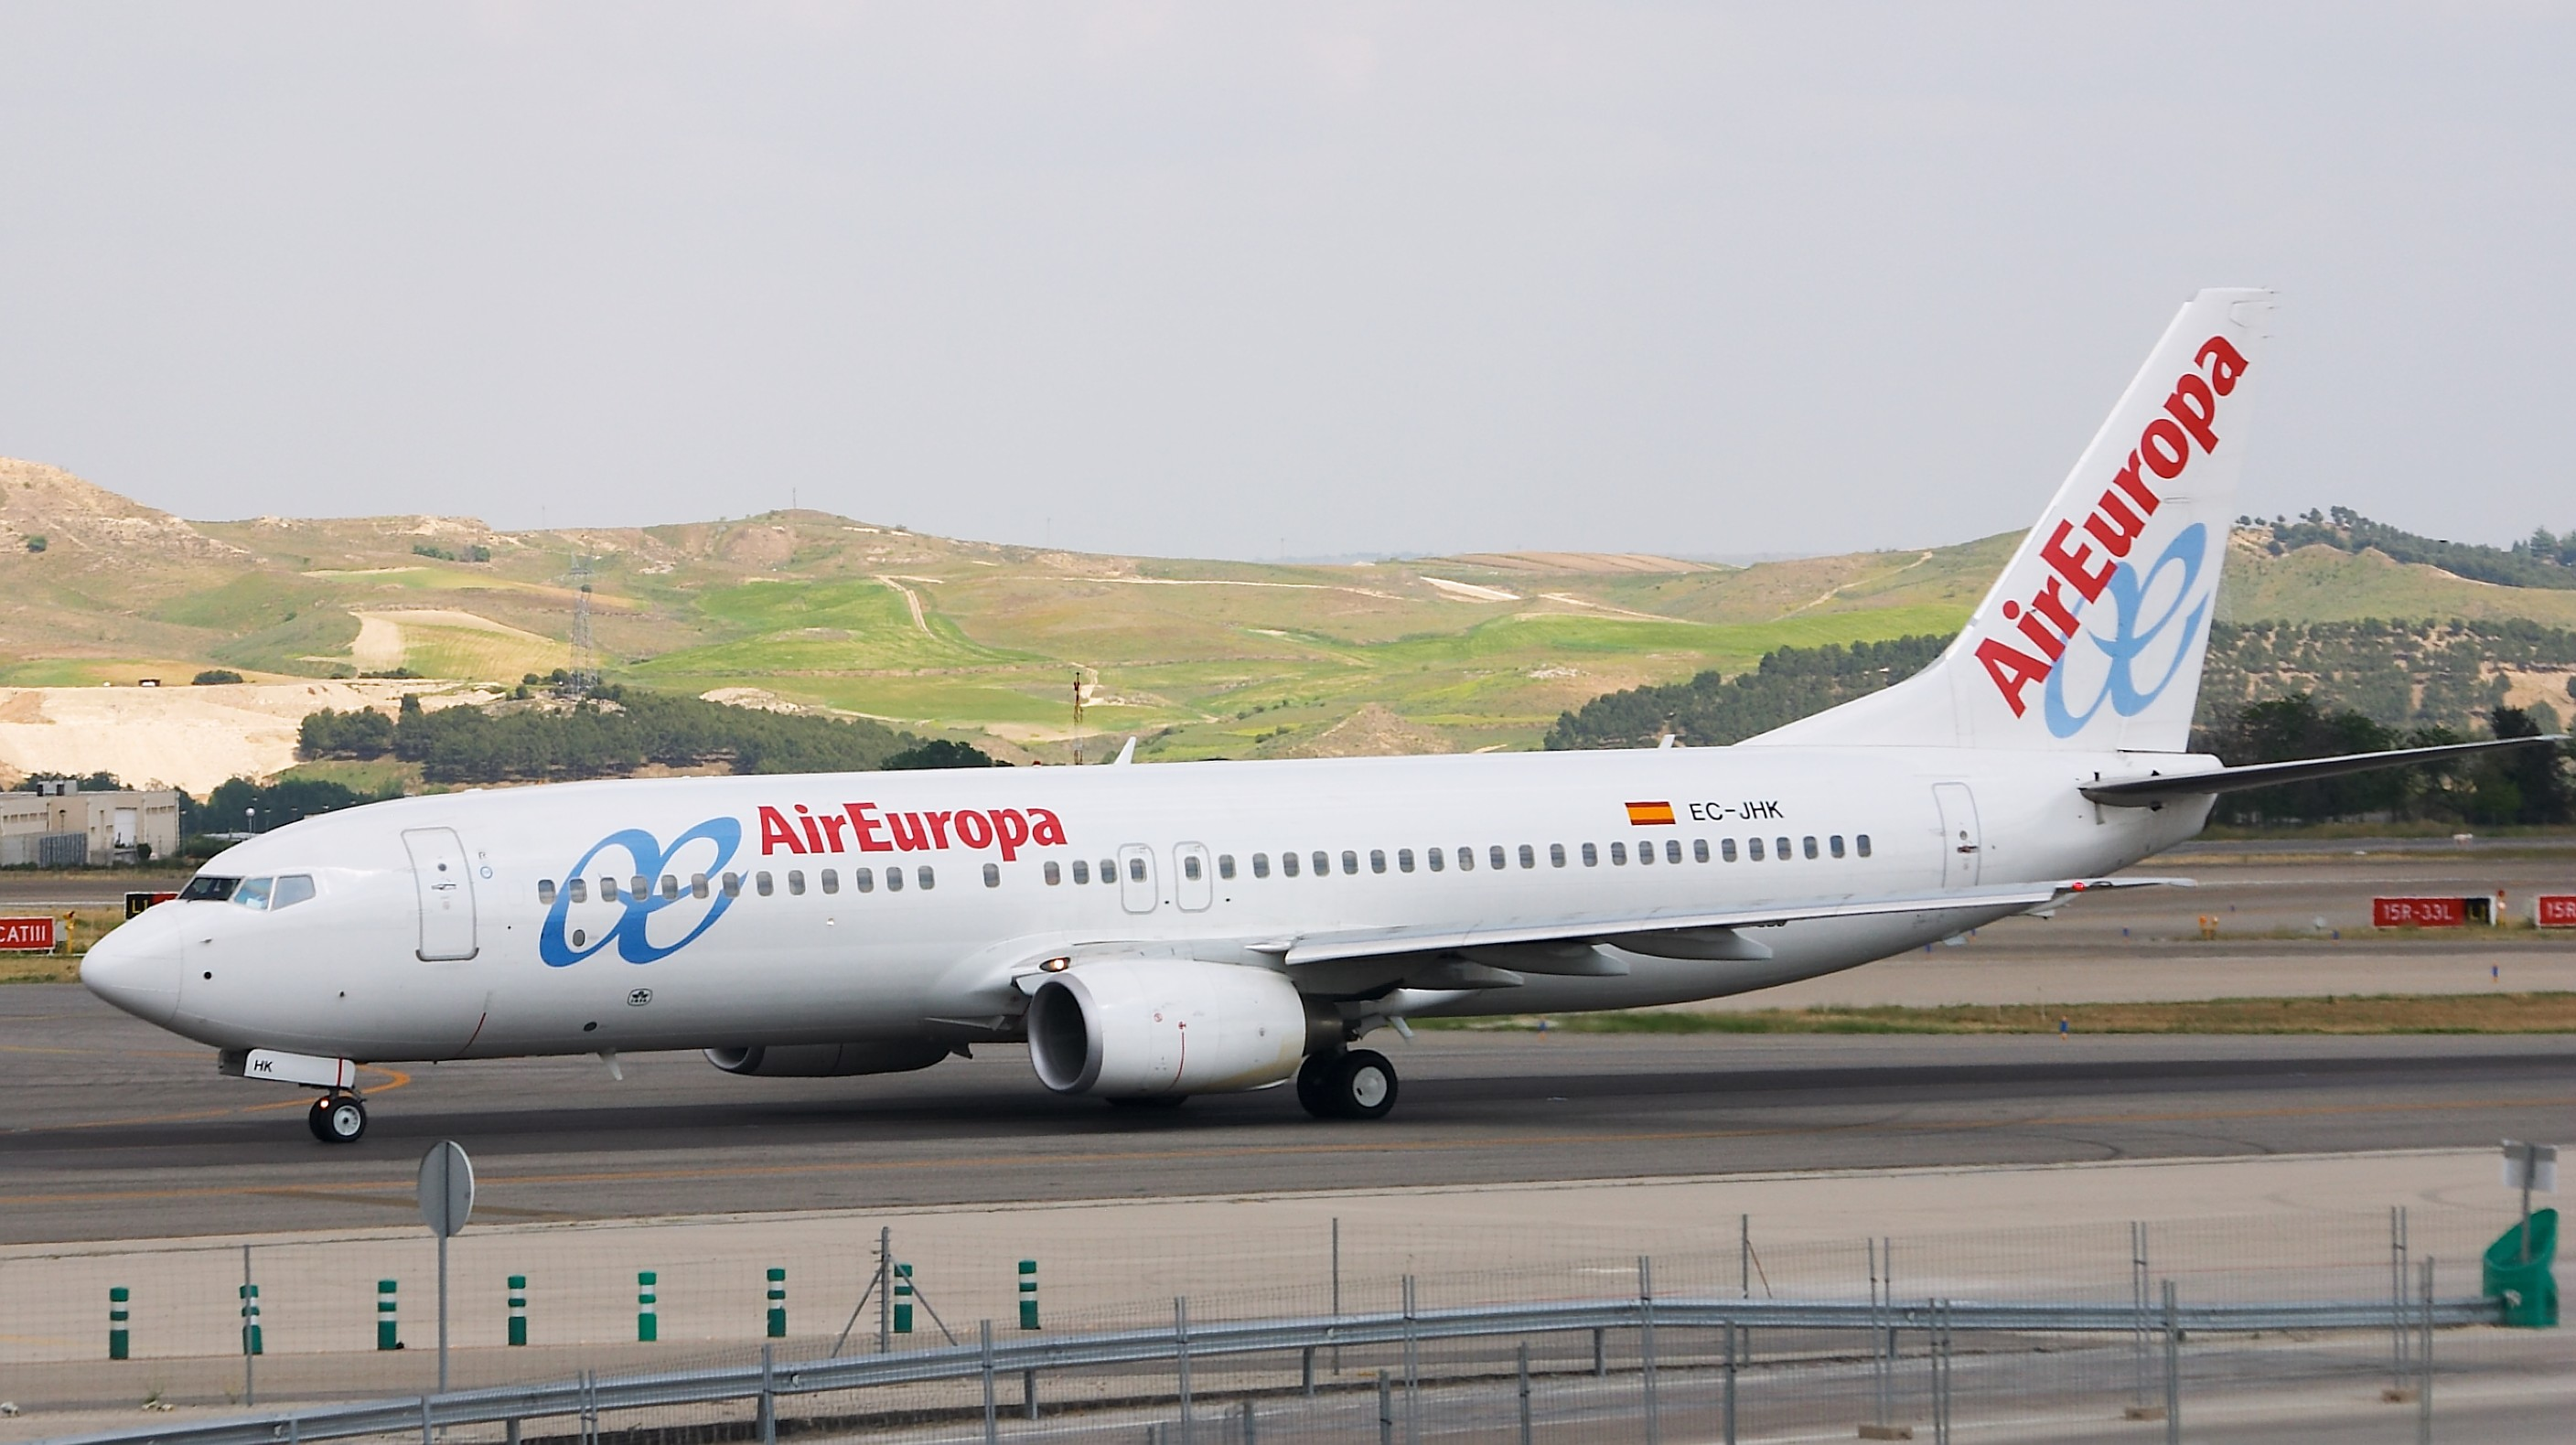 The airline Air Europe (Air Europa). Official sayt.2